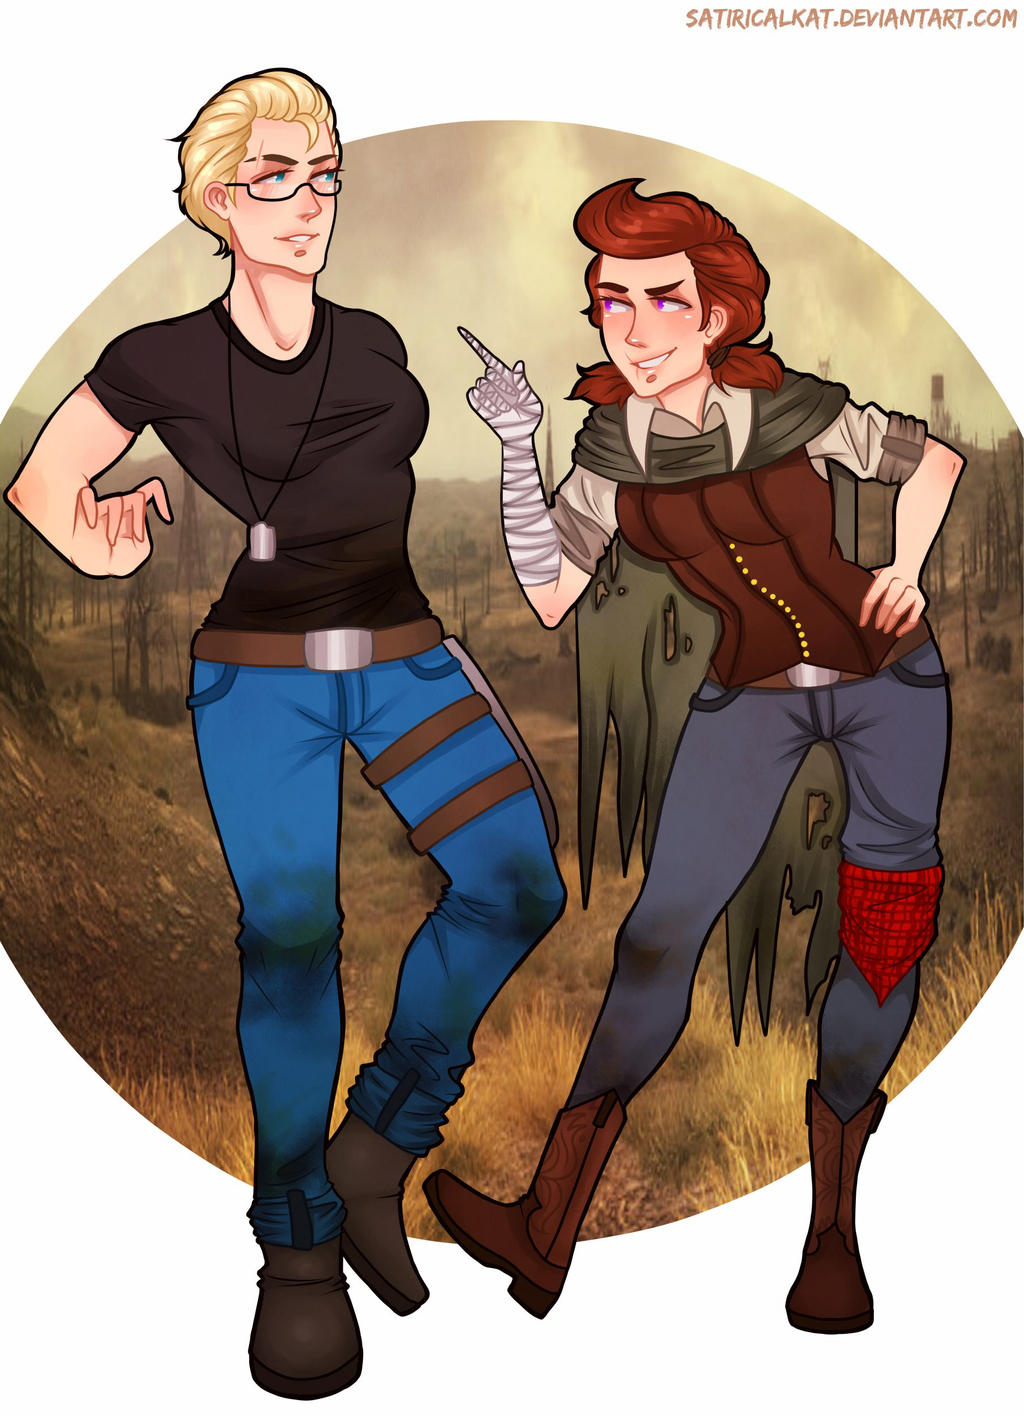 Fallout 3 Anime Characters : Fallout gabriela and michelle genderbend by satiricalkat